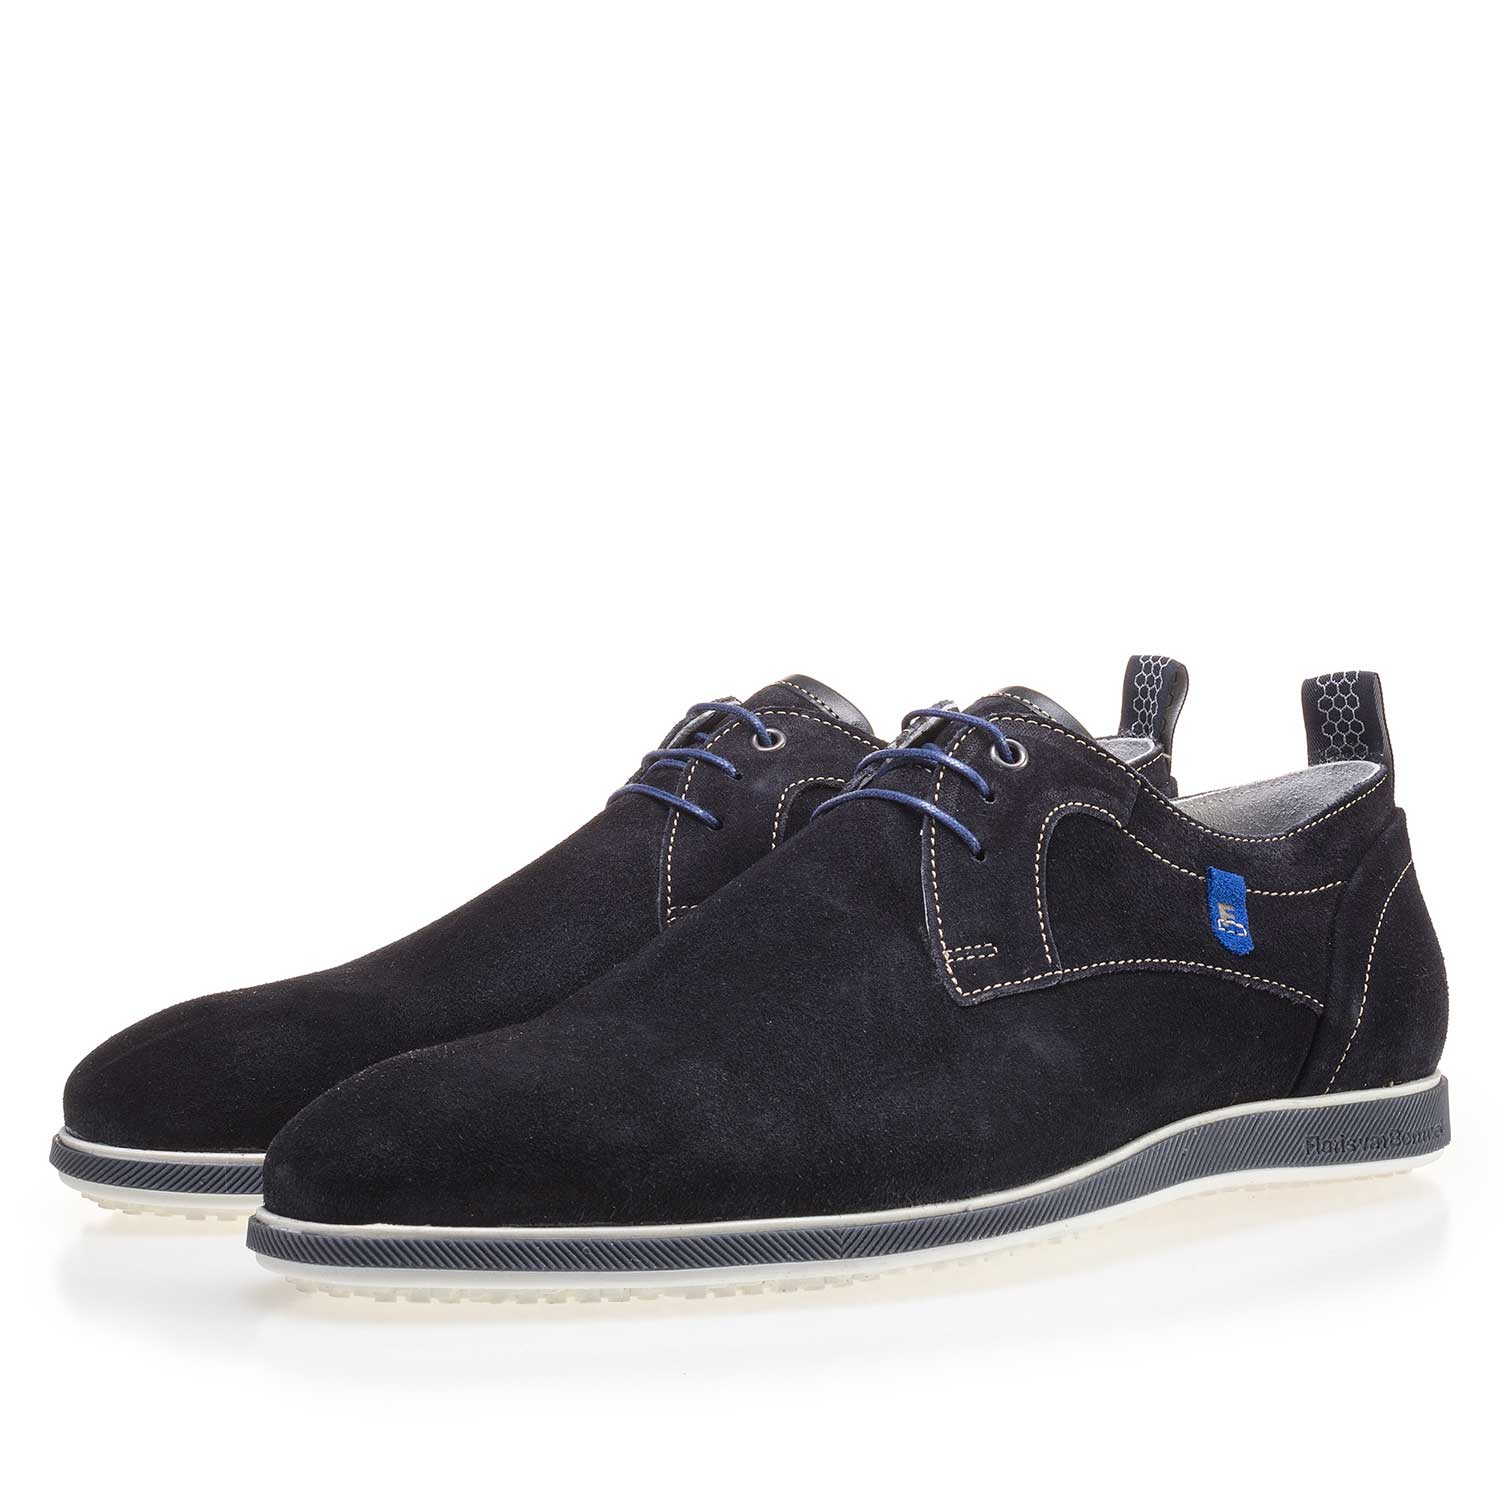 14076/00 - Dark blue suede leather lace shoe